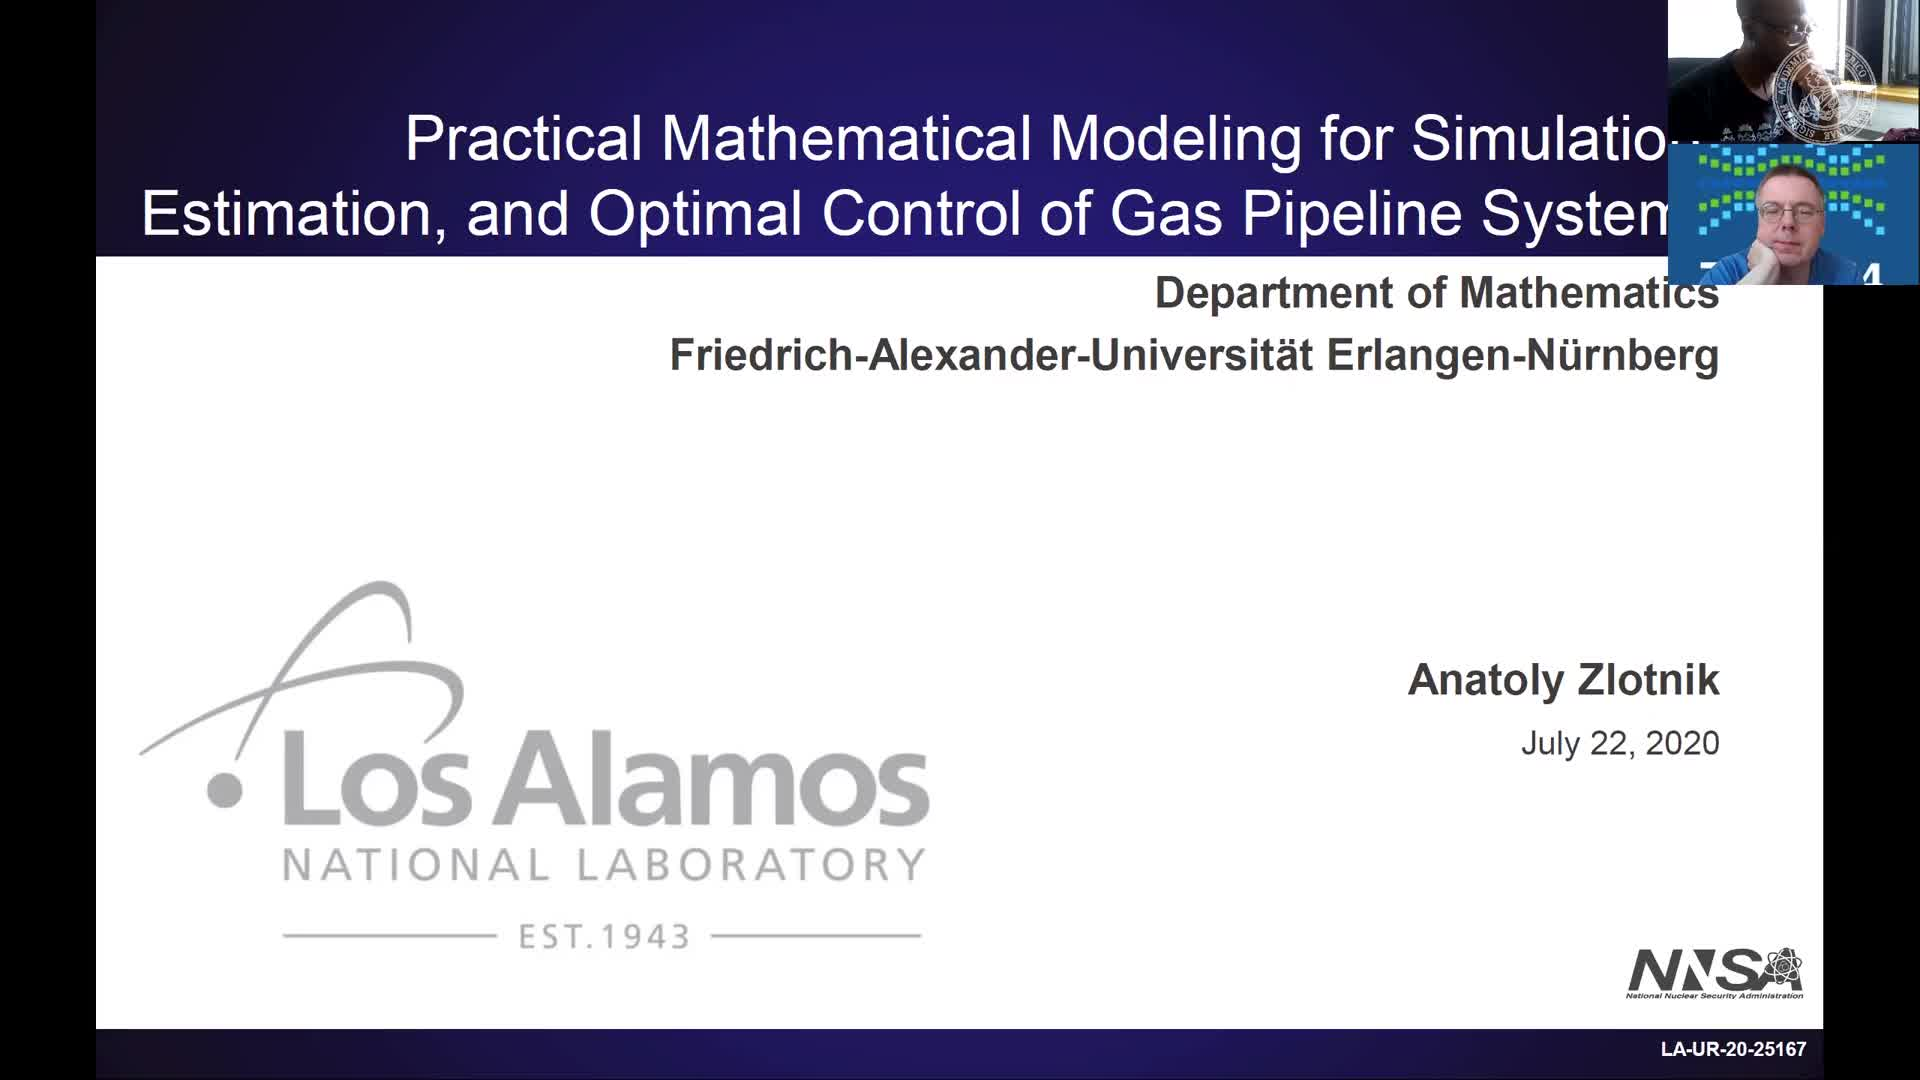 Practical Mathematical Modeling for Simulation, Estimation, and Optimal Control of Gas Pipeline Systems preview image